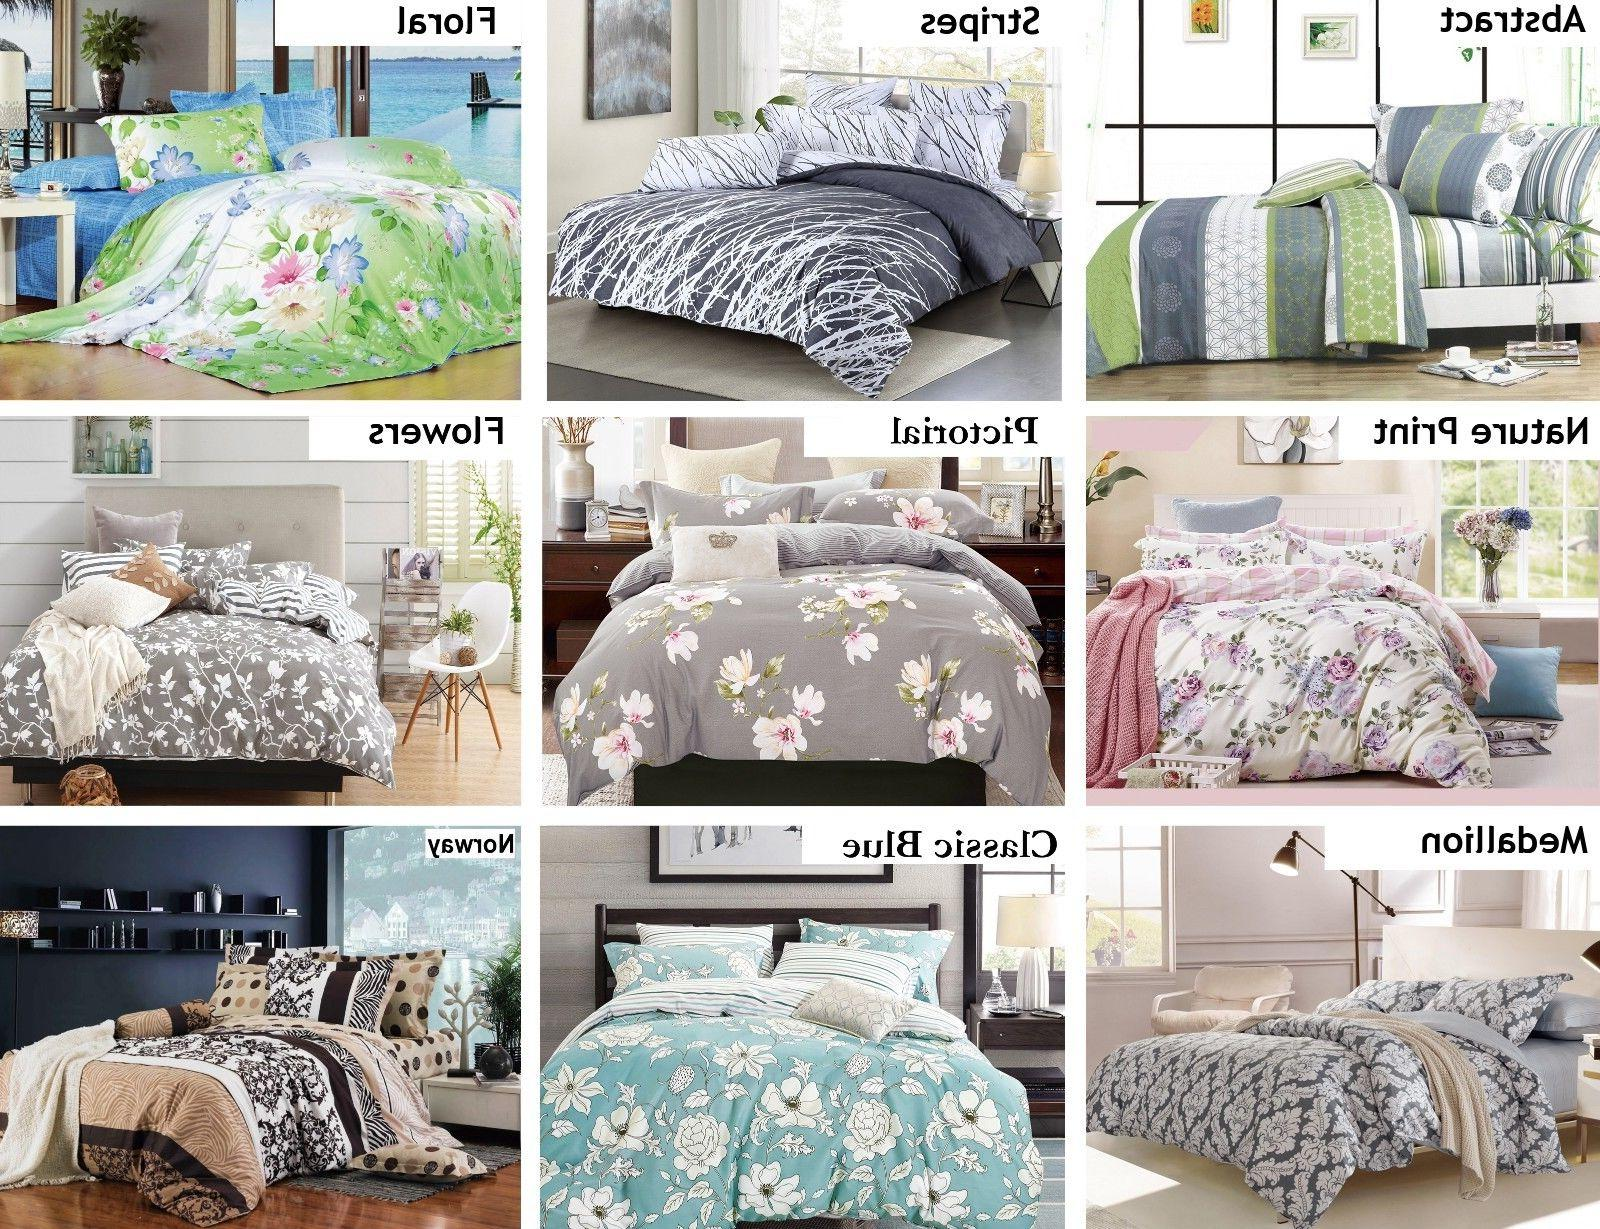 duvet cover 16 designs